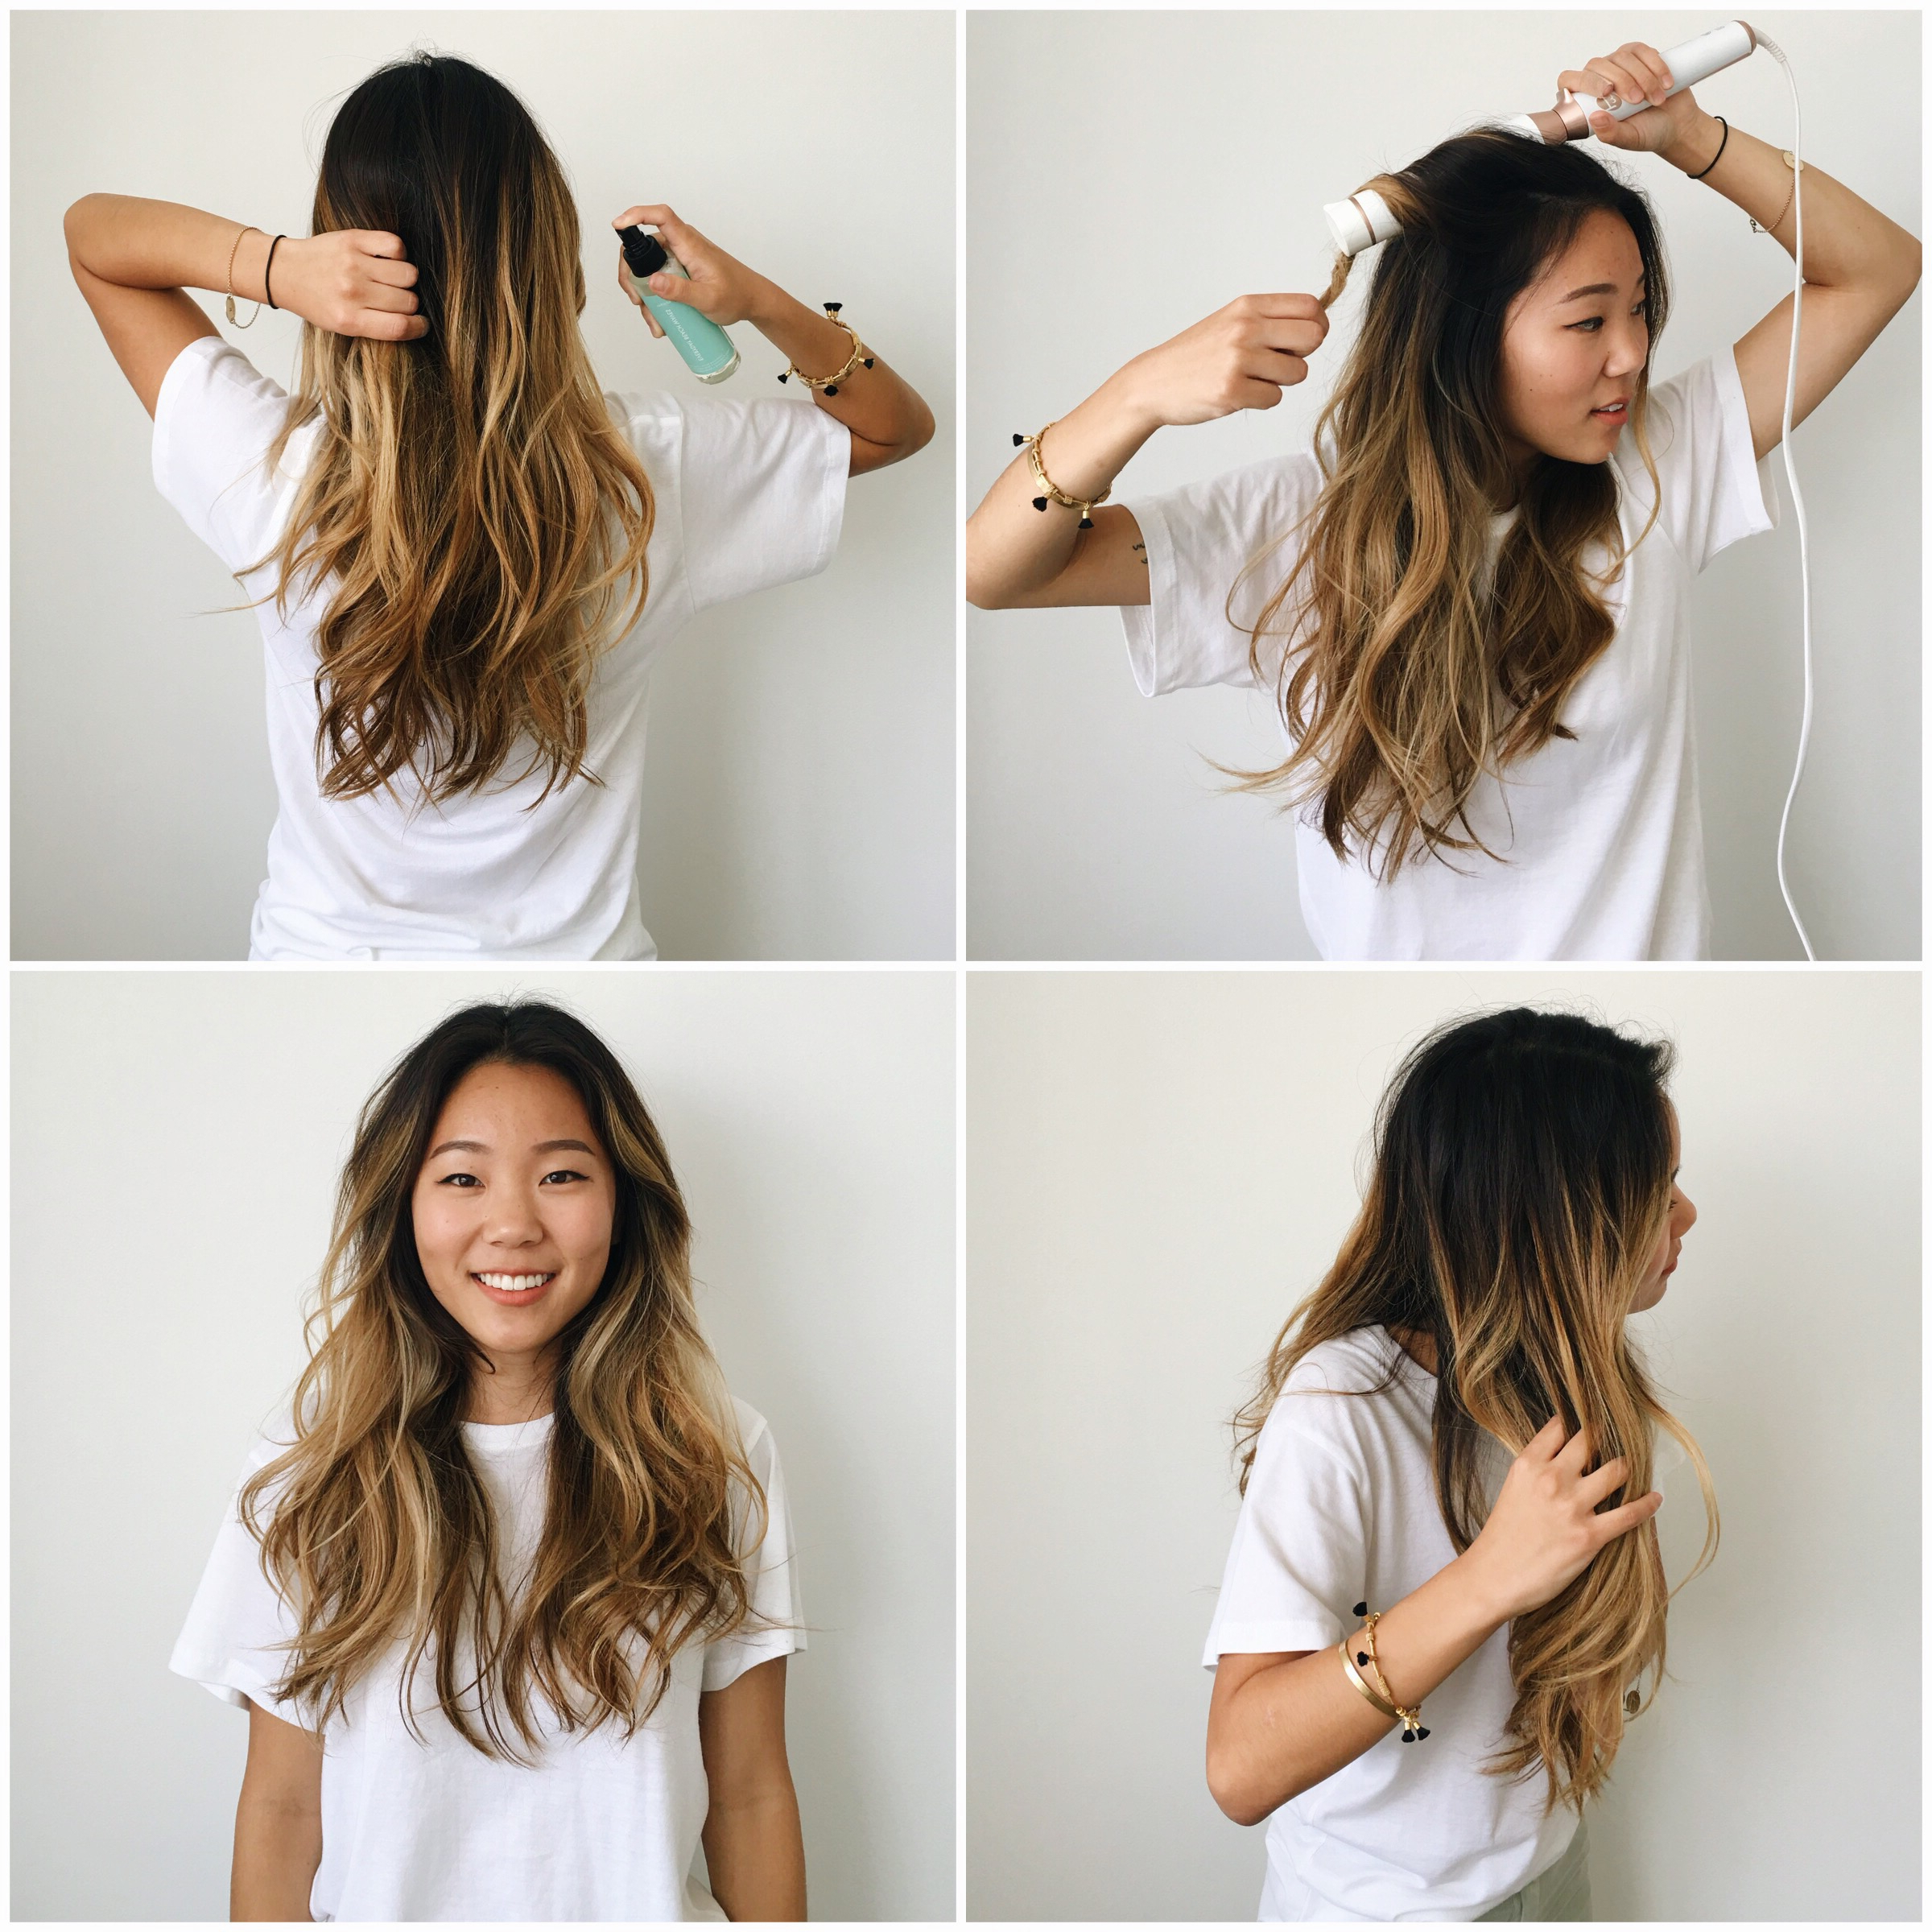 3 Summer Hairstyles That'll Get You That Coveted Beachy Wave – Fabfitfun For Most Recently Released Beach Waves Hairstyles (Gallery 16 of 20)